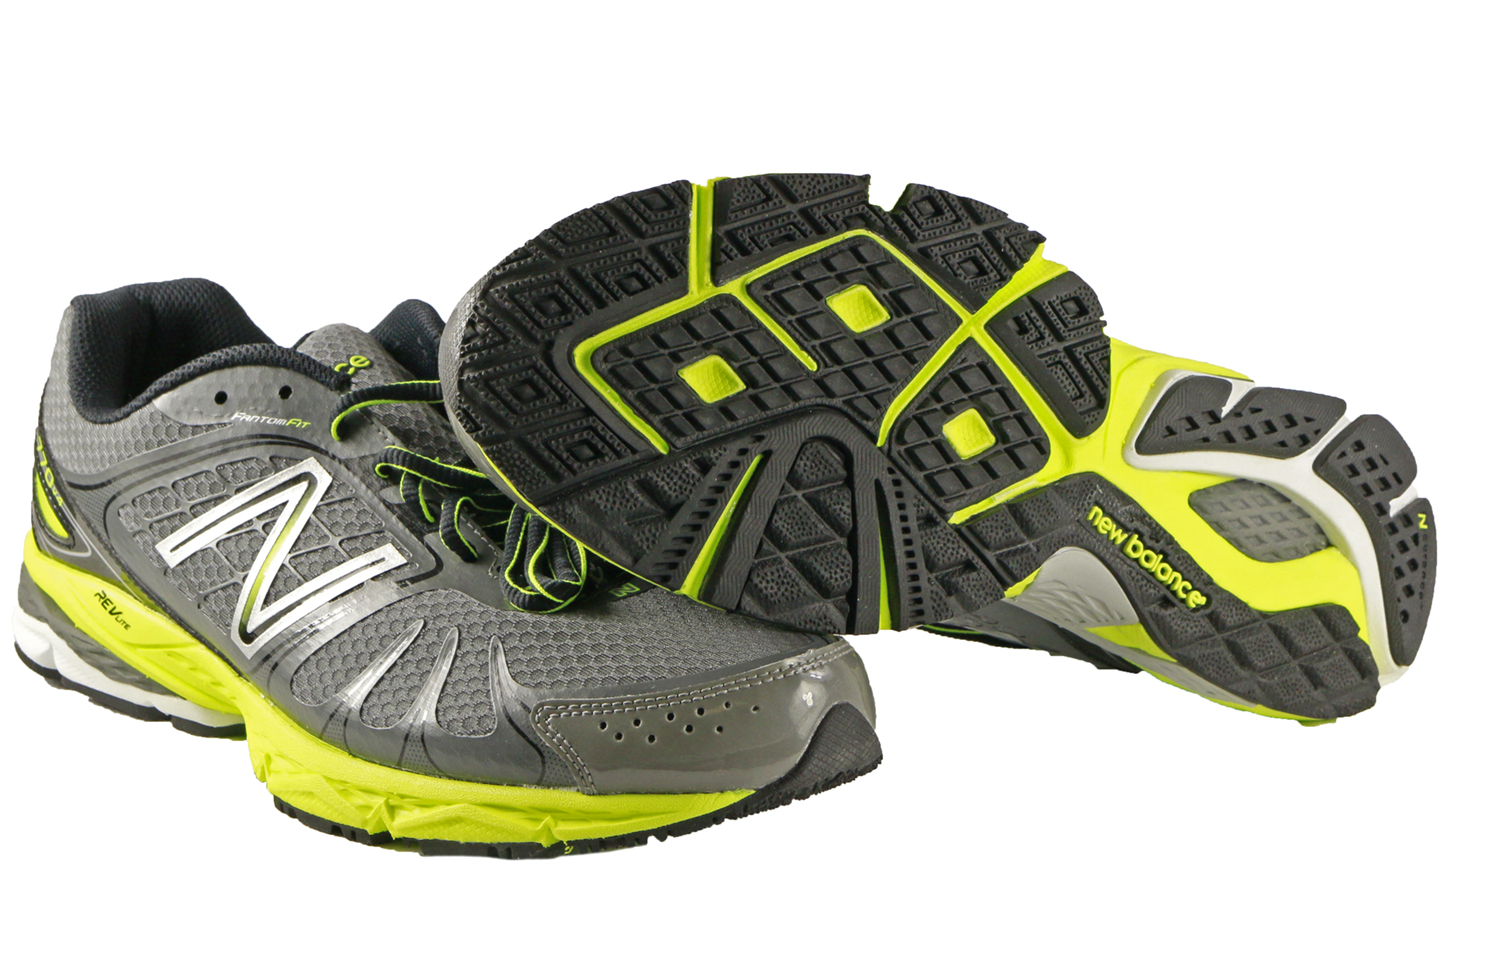 5cd484c19af50 New Balance Mens 770GY4 Running Course Shoes in Grey/Yellow size 10 ...